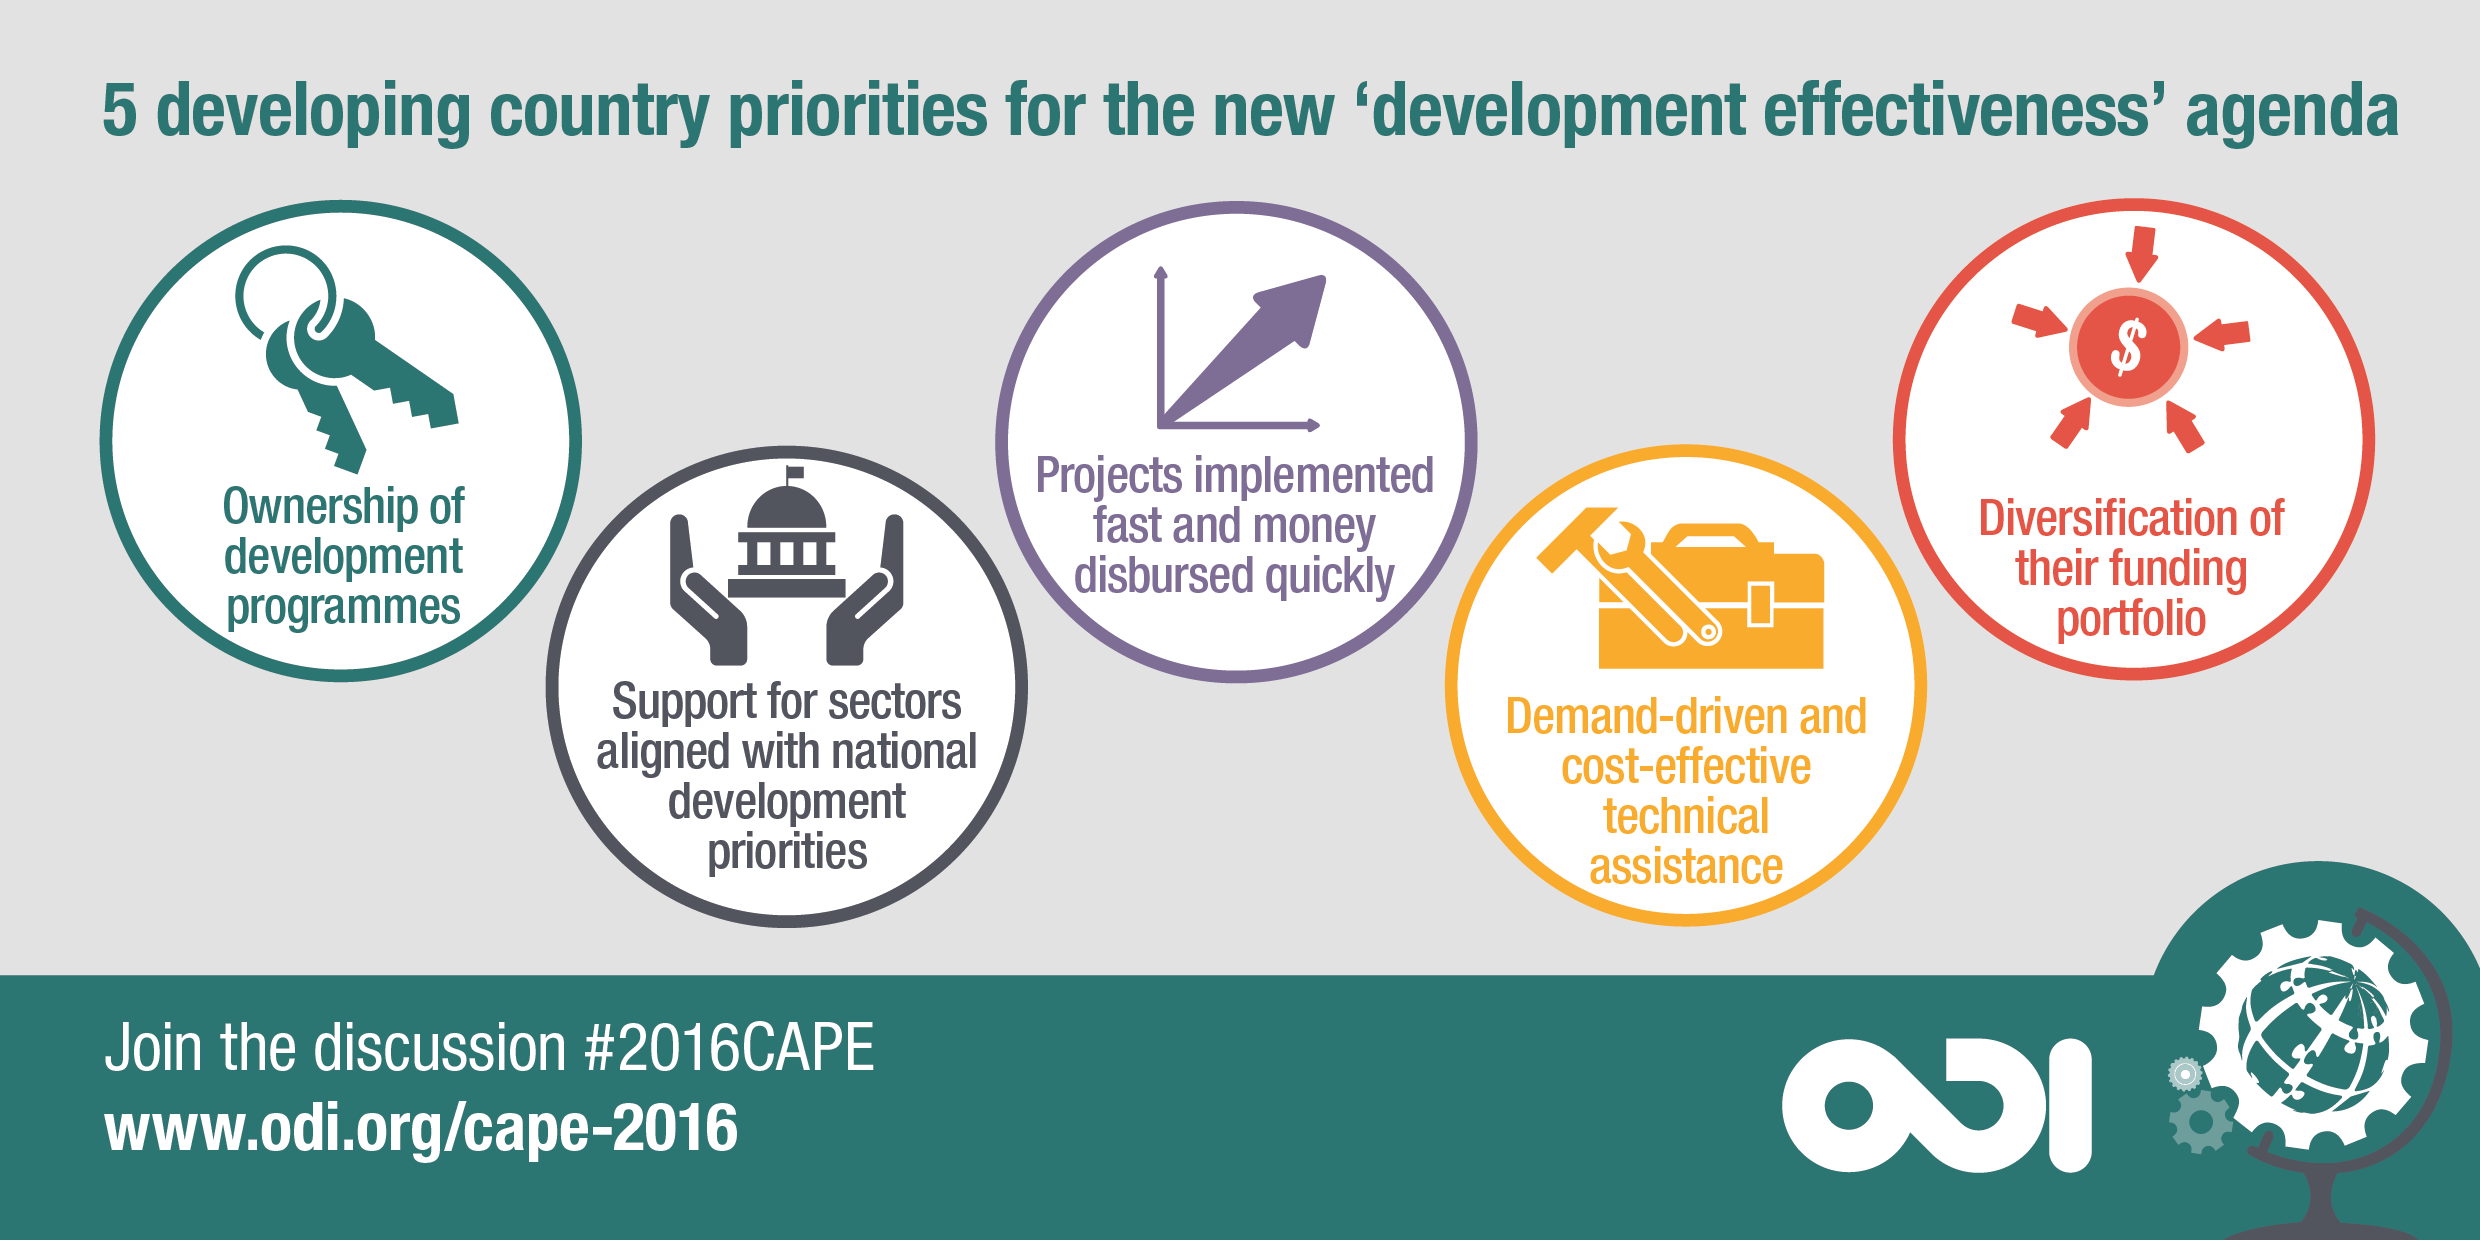 5 developing country priorities for the new 'development effectiveness' agenda